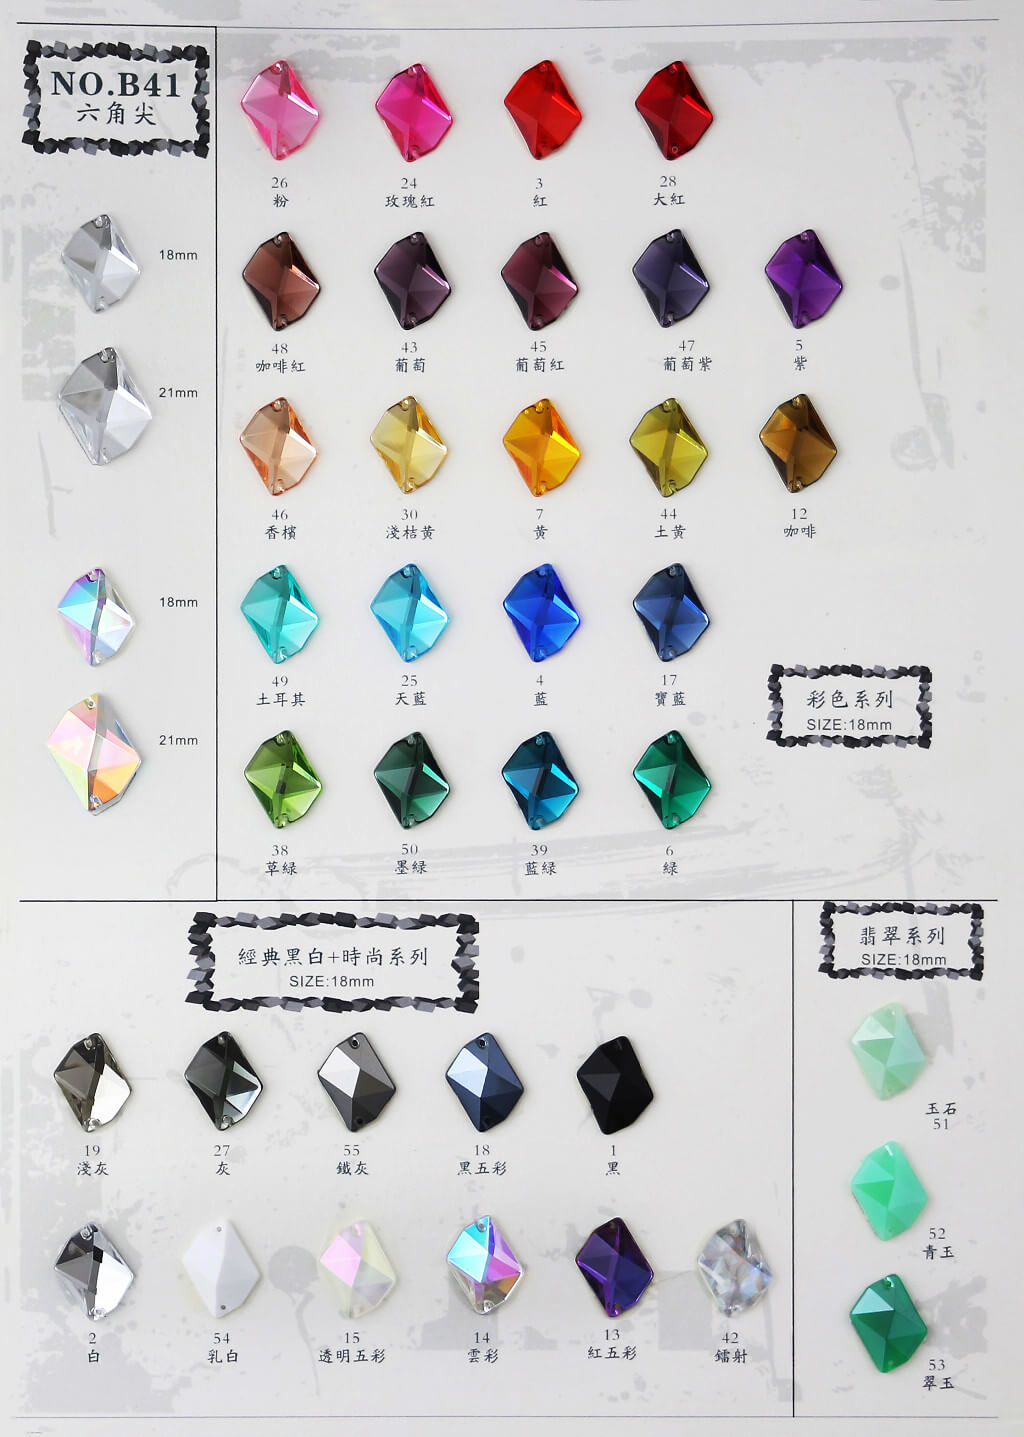 acrylic jewels wholesale catalogue